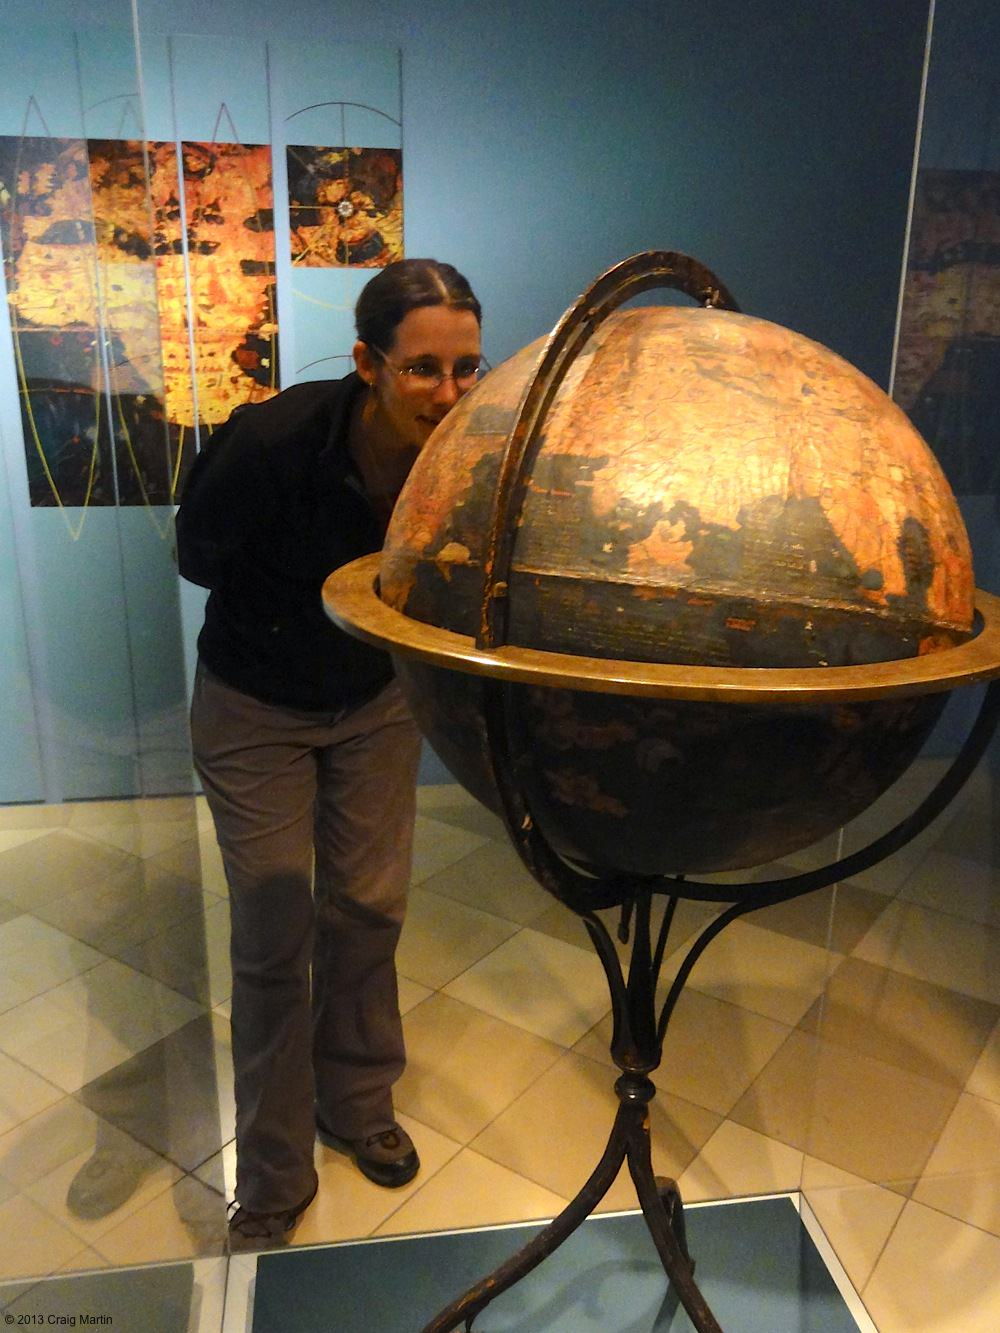 This globe is OLD.